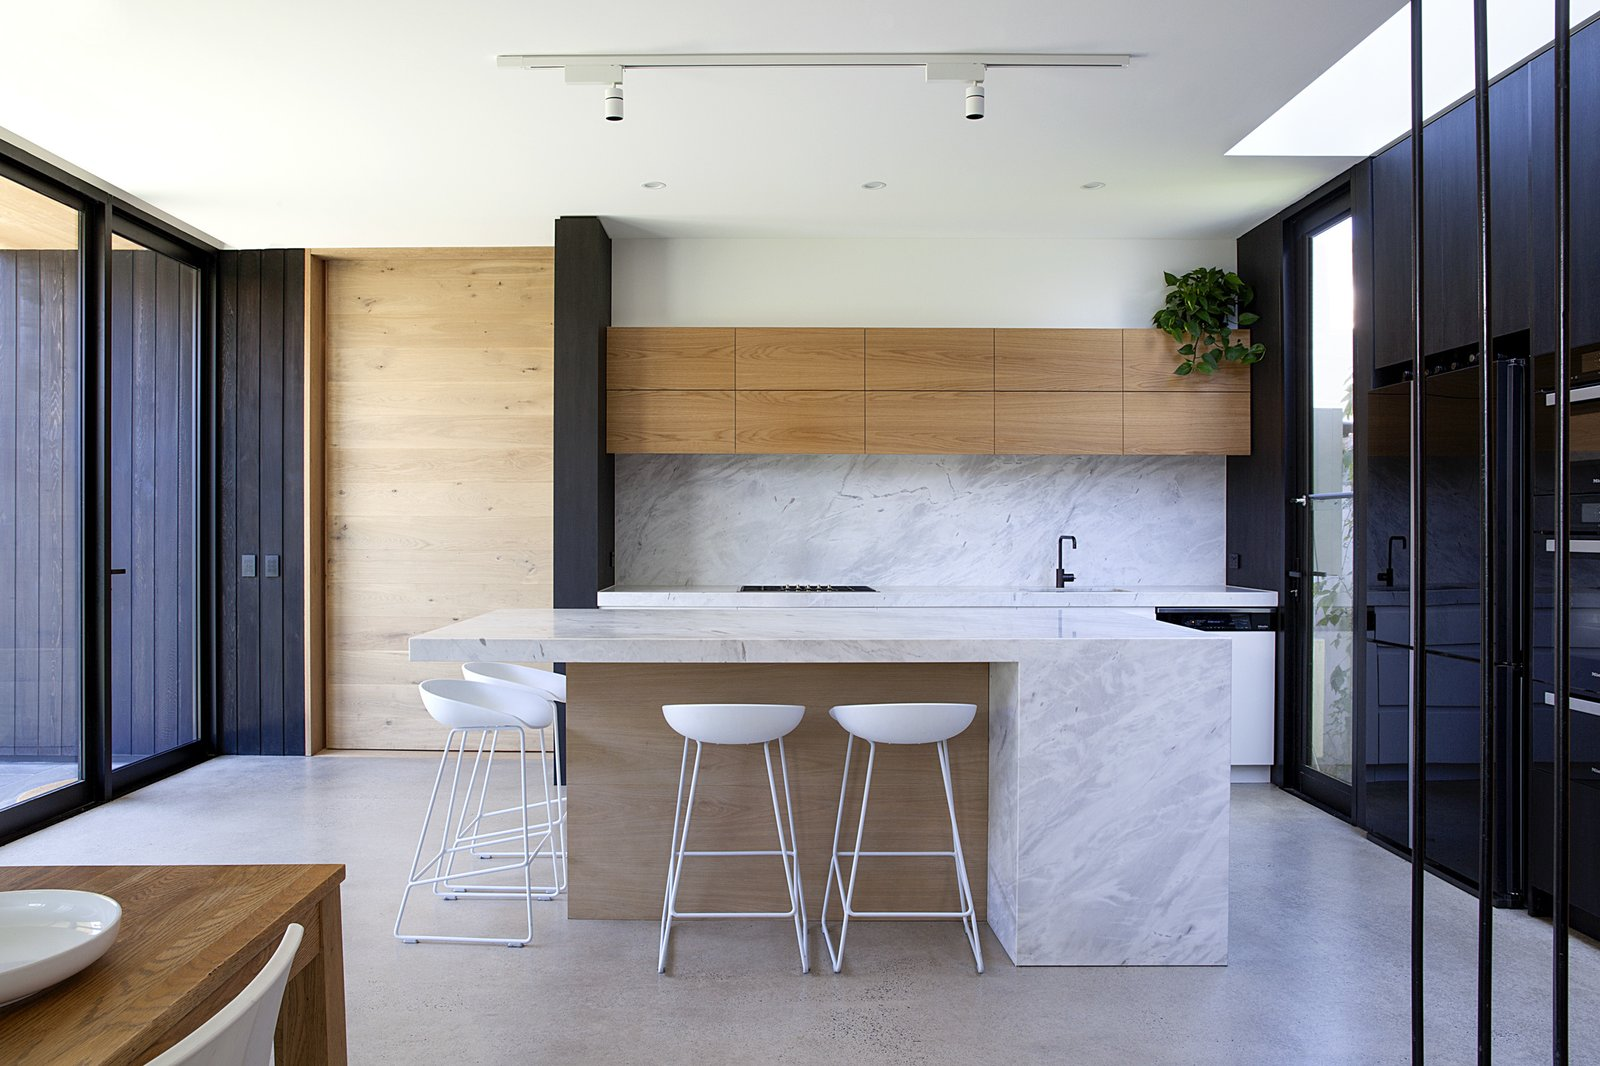 Marble kitchen backsplashes